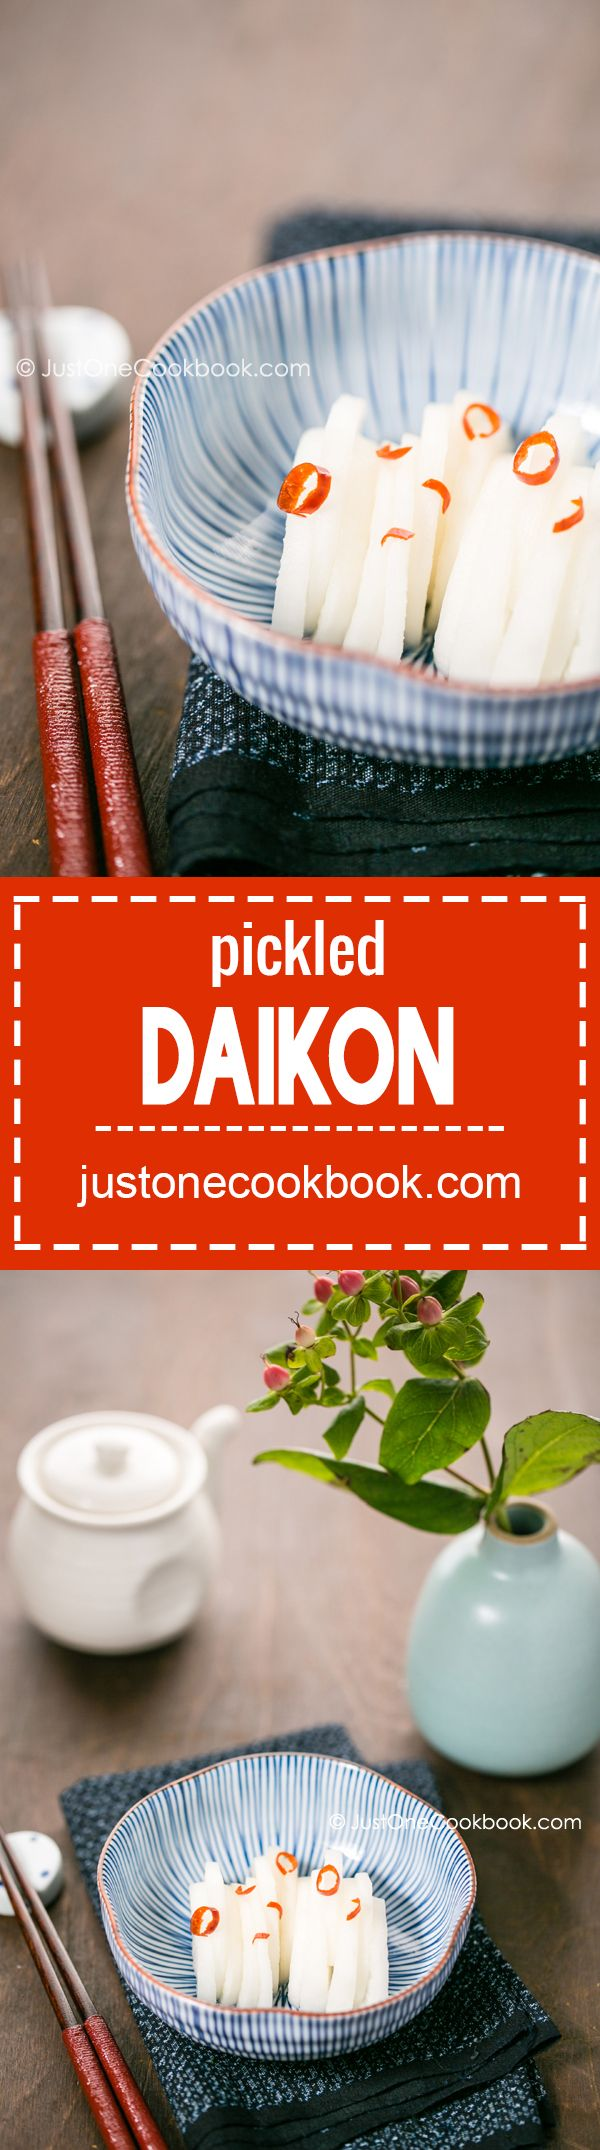 Pickled Daikon (大根の漬物) | Easy Japanese Recipes at JustOneCookbook.com